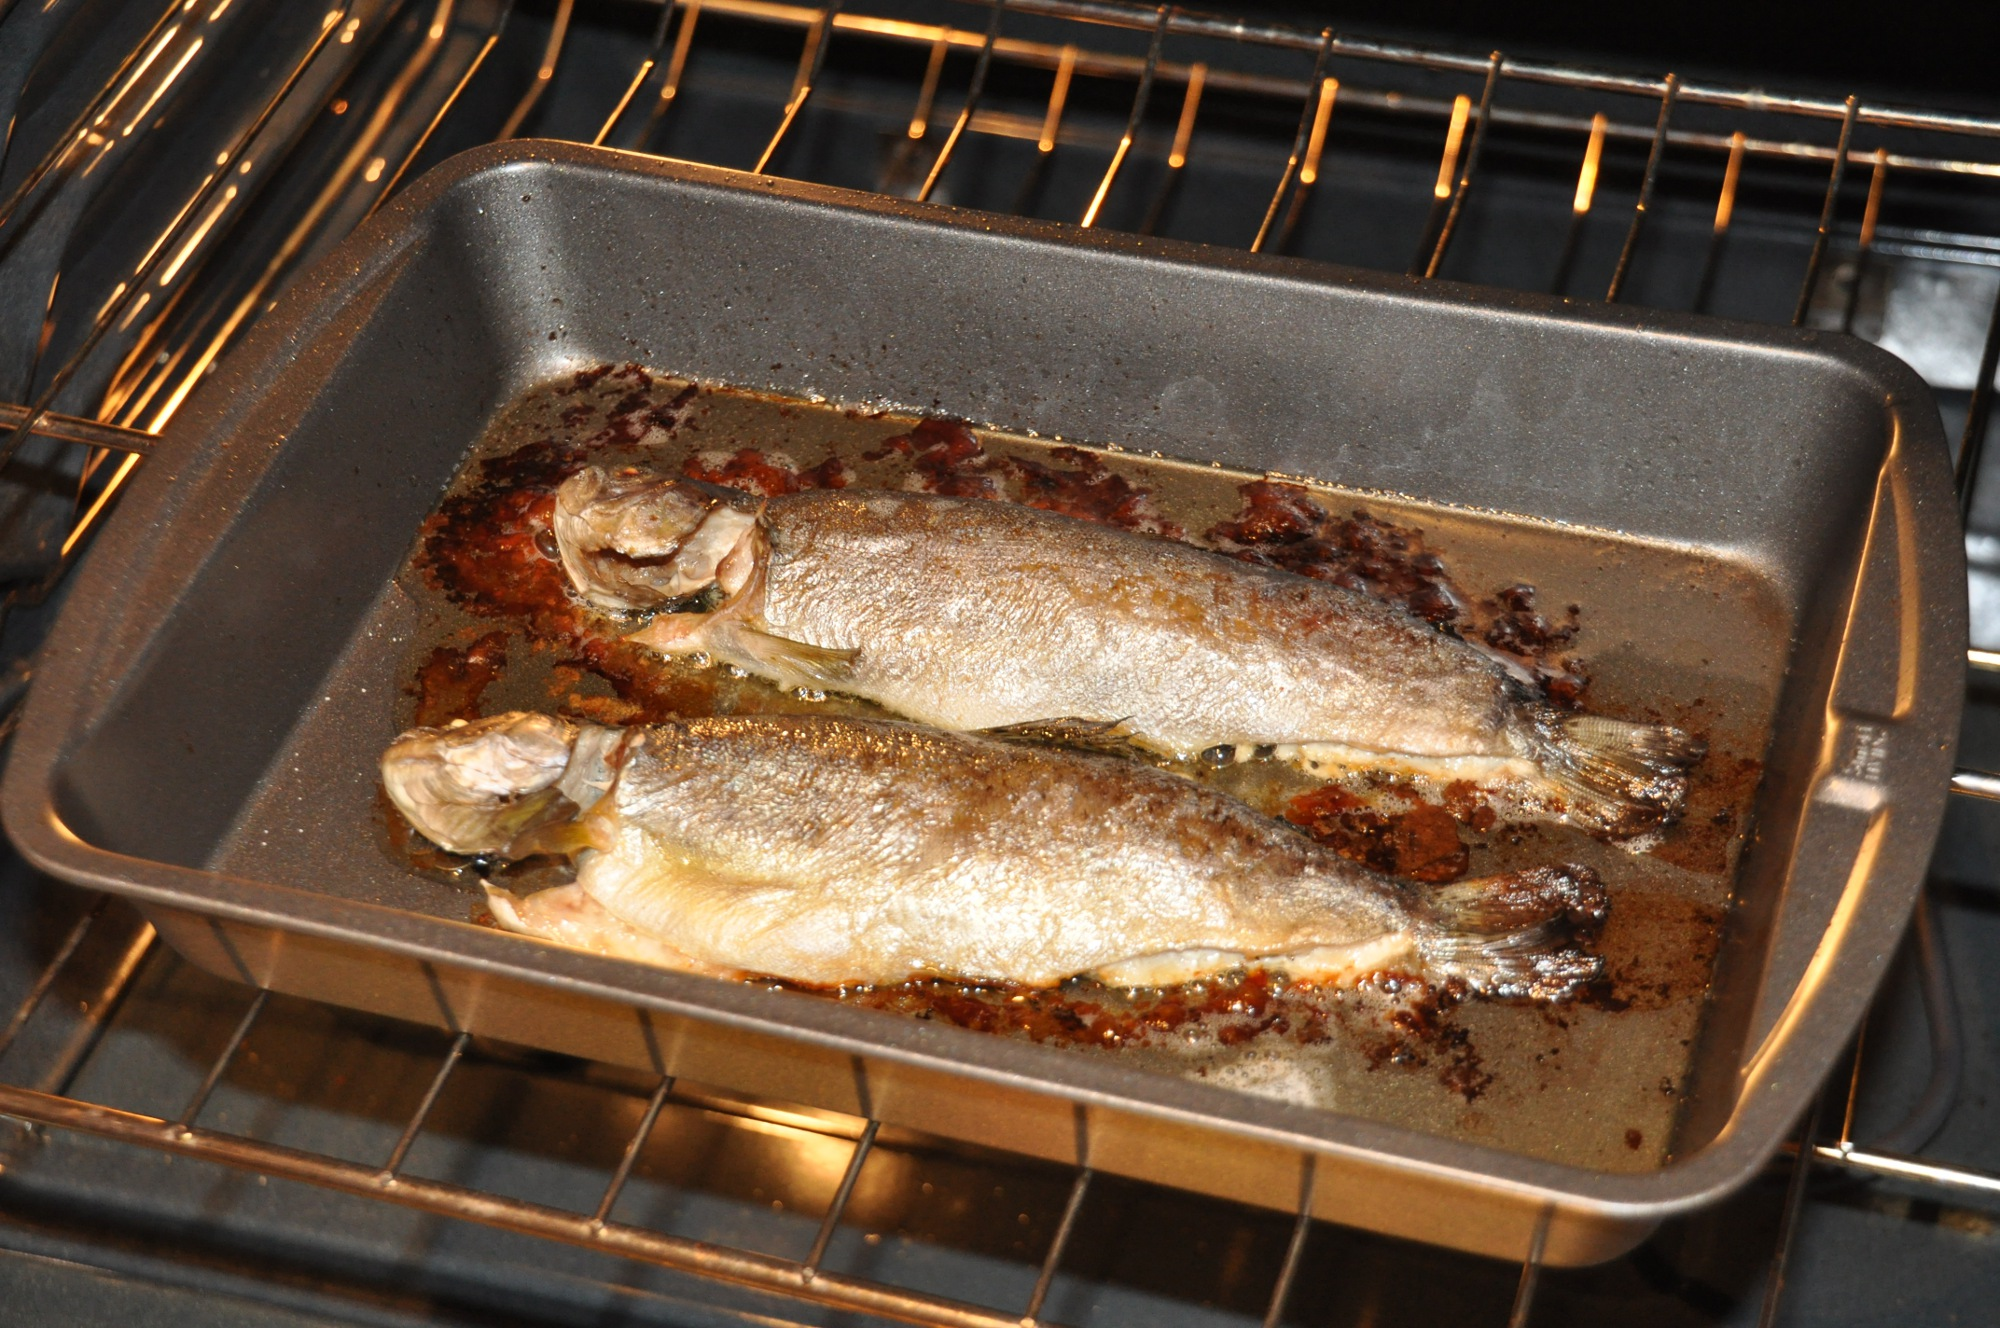 Baked trout pe en pstruh recipe slovak cooking for Fish in oven